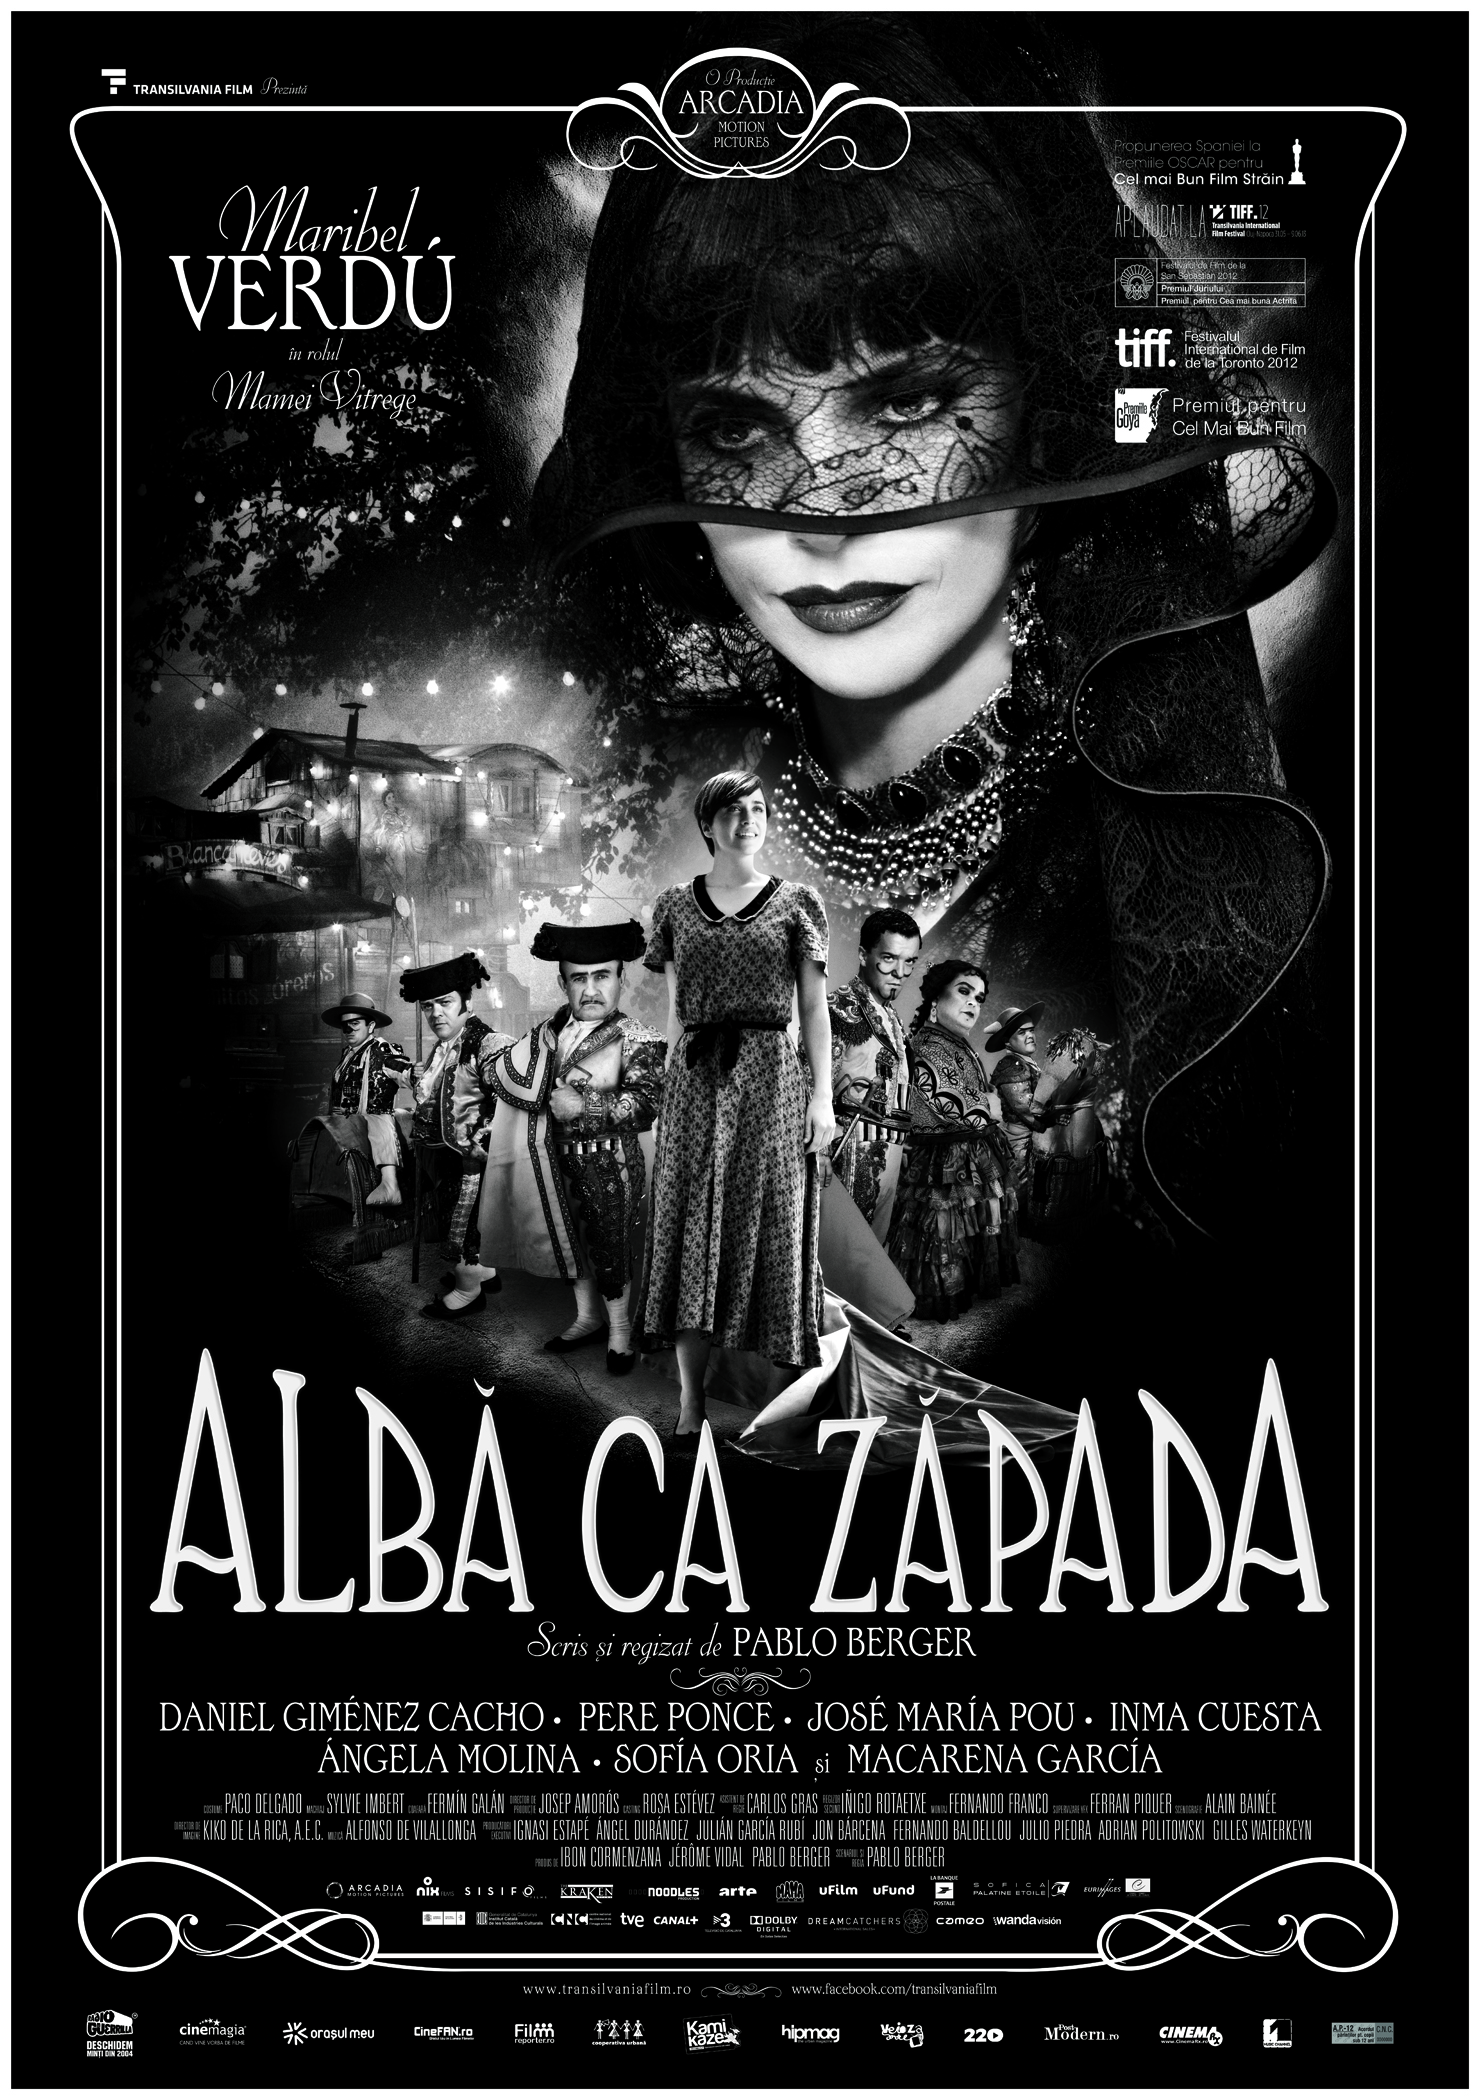 http://static.cinemagia.ro/img/db/movie/56/77/69/blancanieves-150274l.jpg